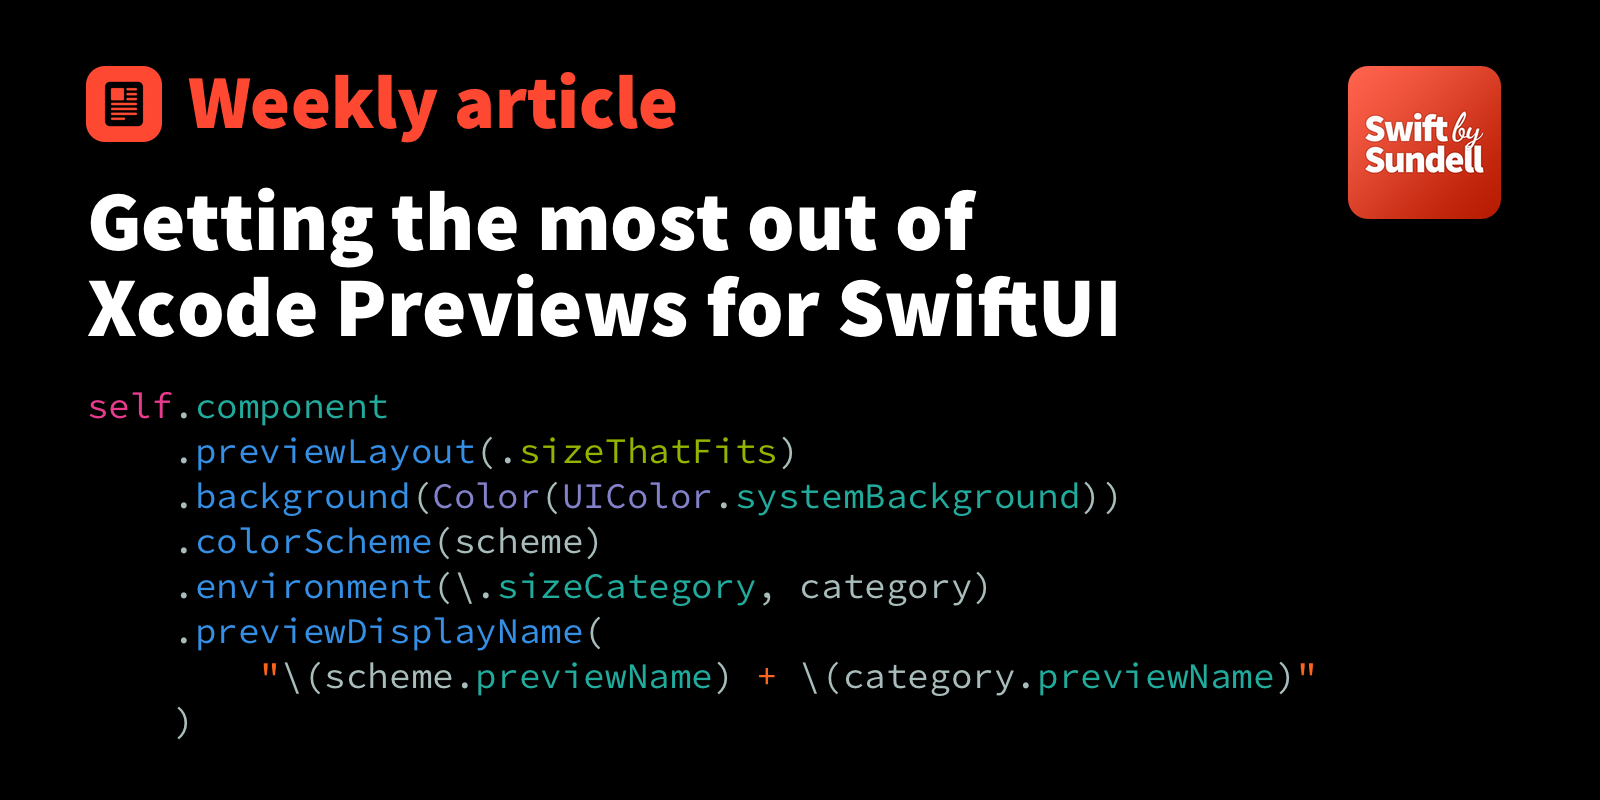 Getting the most out of Xcode Previews for SwiftUI | Swift by Sundell